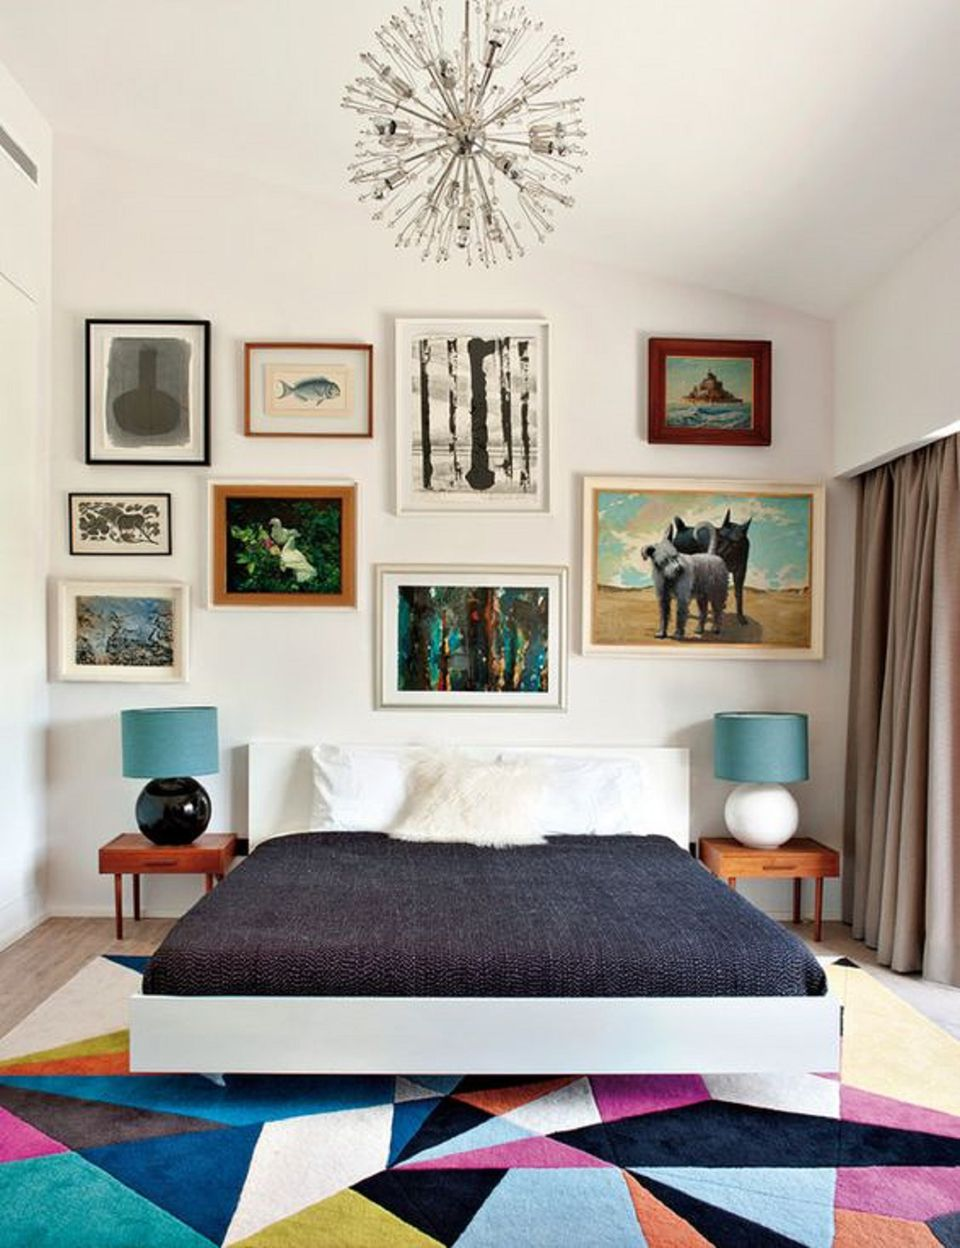 wood a tile floors mid bedroom brepurposed under boho look century with in modern nightstands